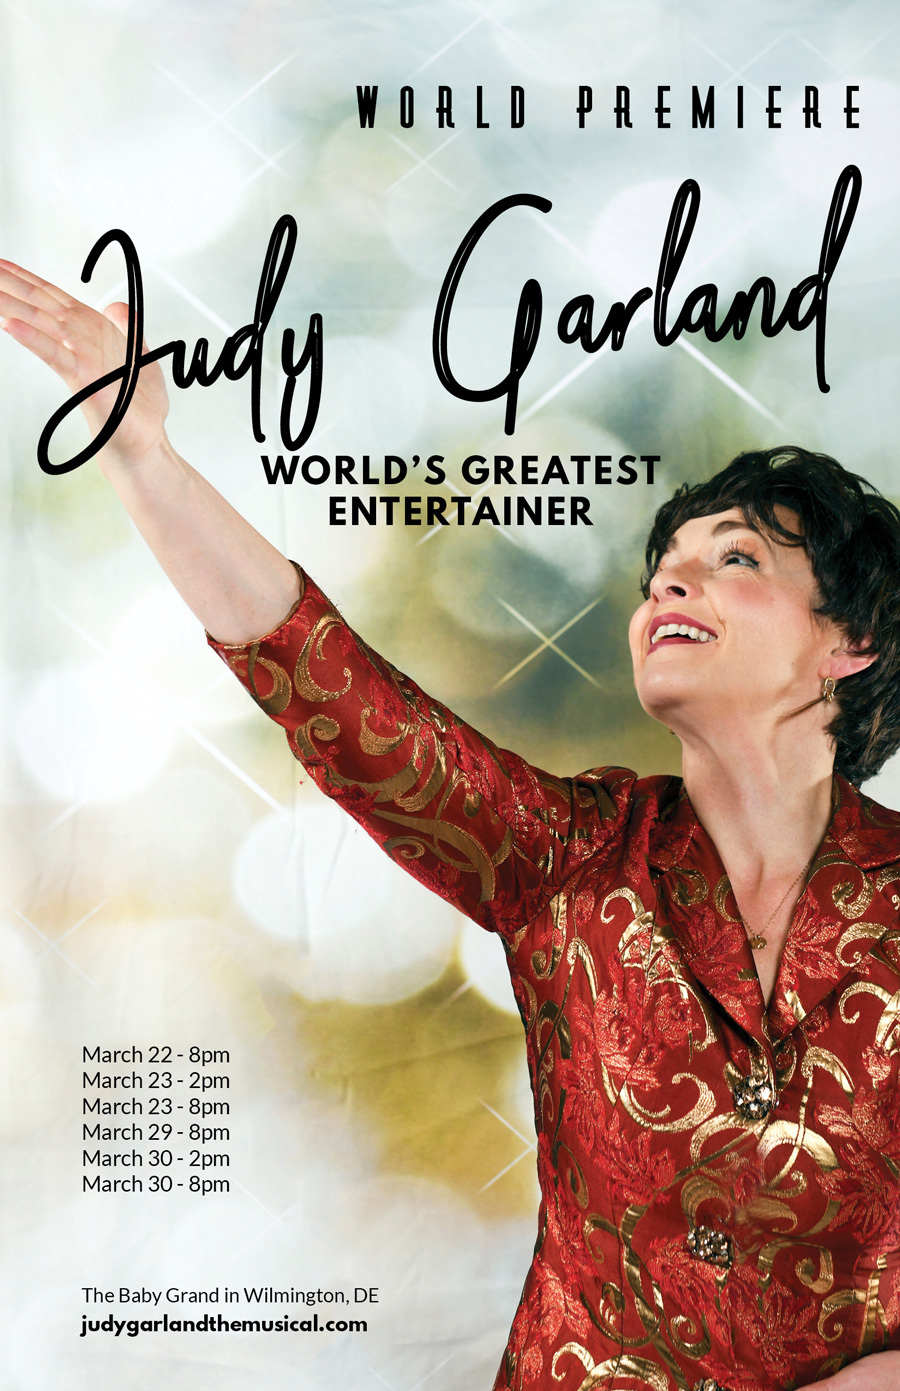 BWW Feature: JUDY GARLAND 'WORLD'S GREATEST ENTERTAINER' at Grand Opera House